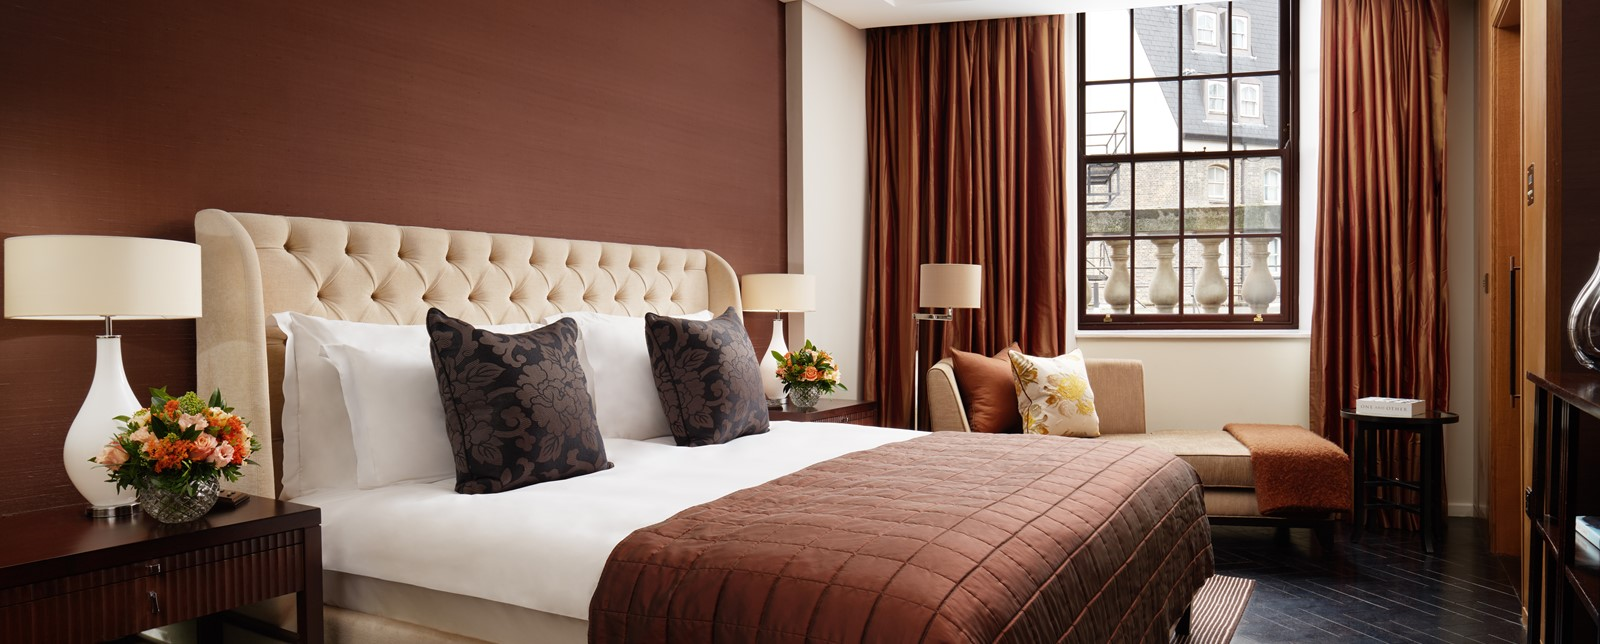 corinthia london whitehall suite bedroom